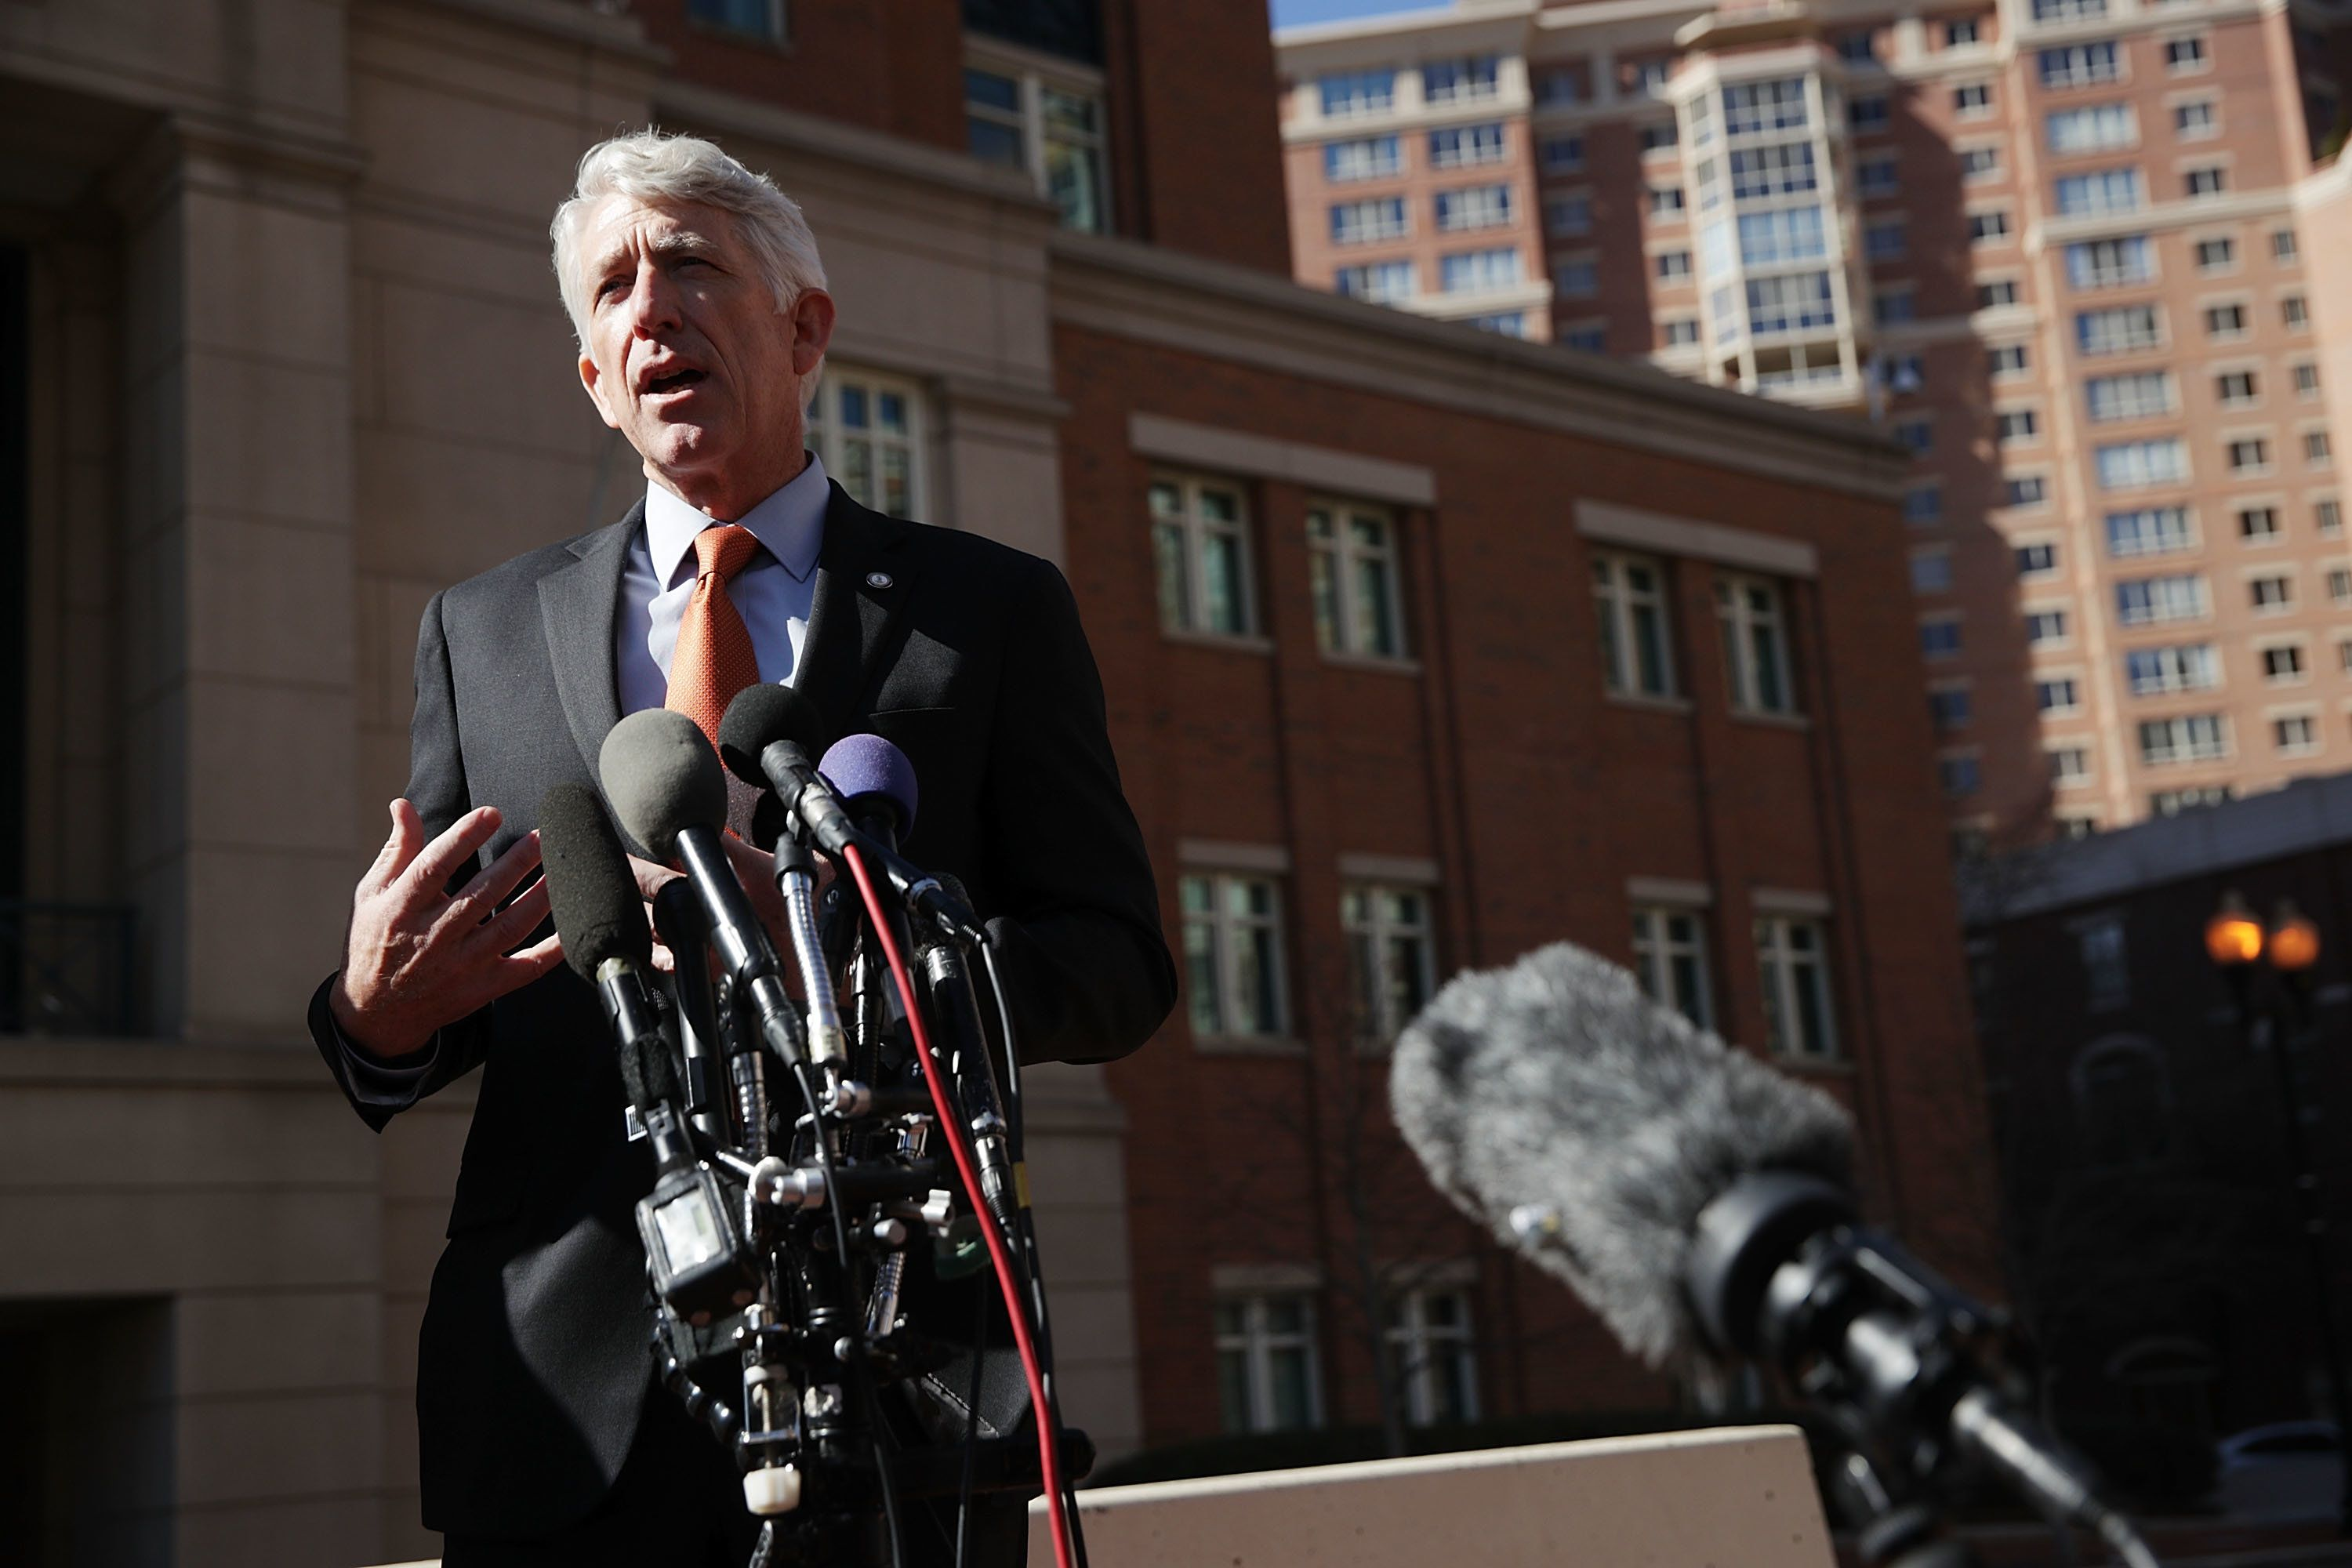 Virginia Attorney General Mark Herring speaks to members of the media after a hearing February 10, 2017 in front of a U.S. Di